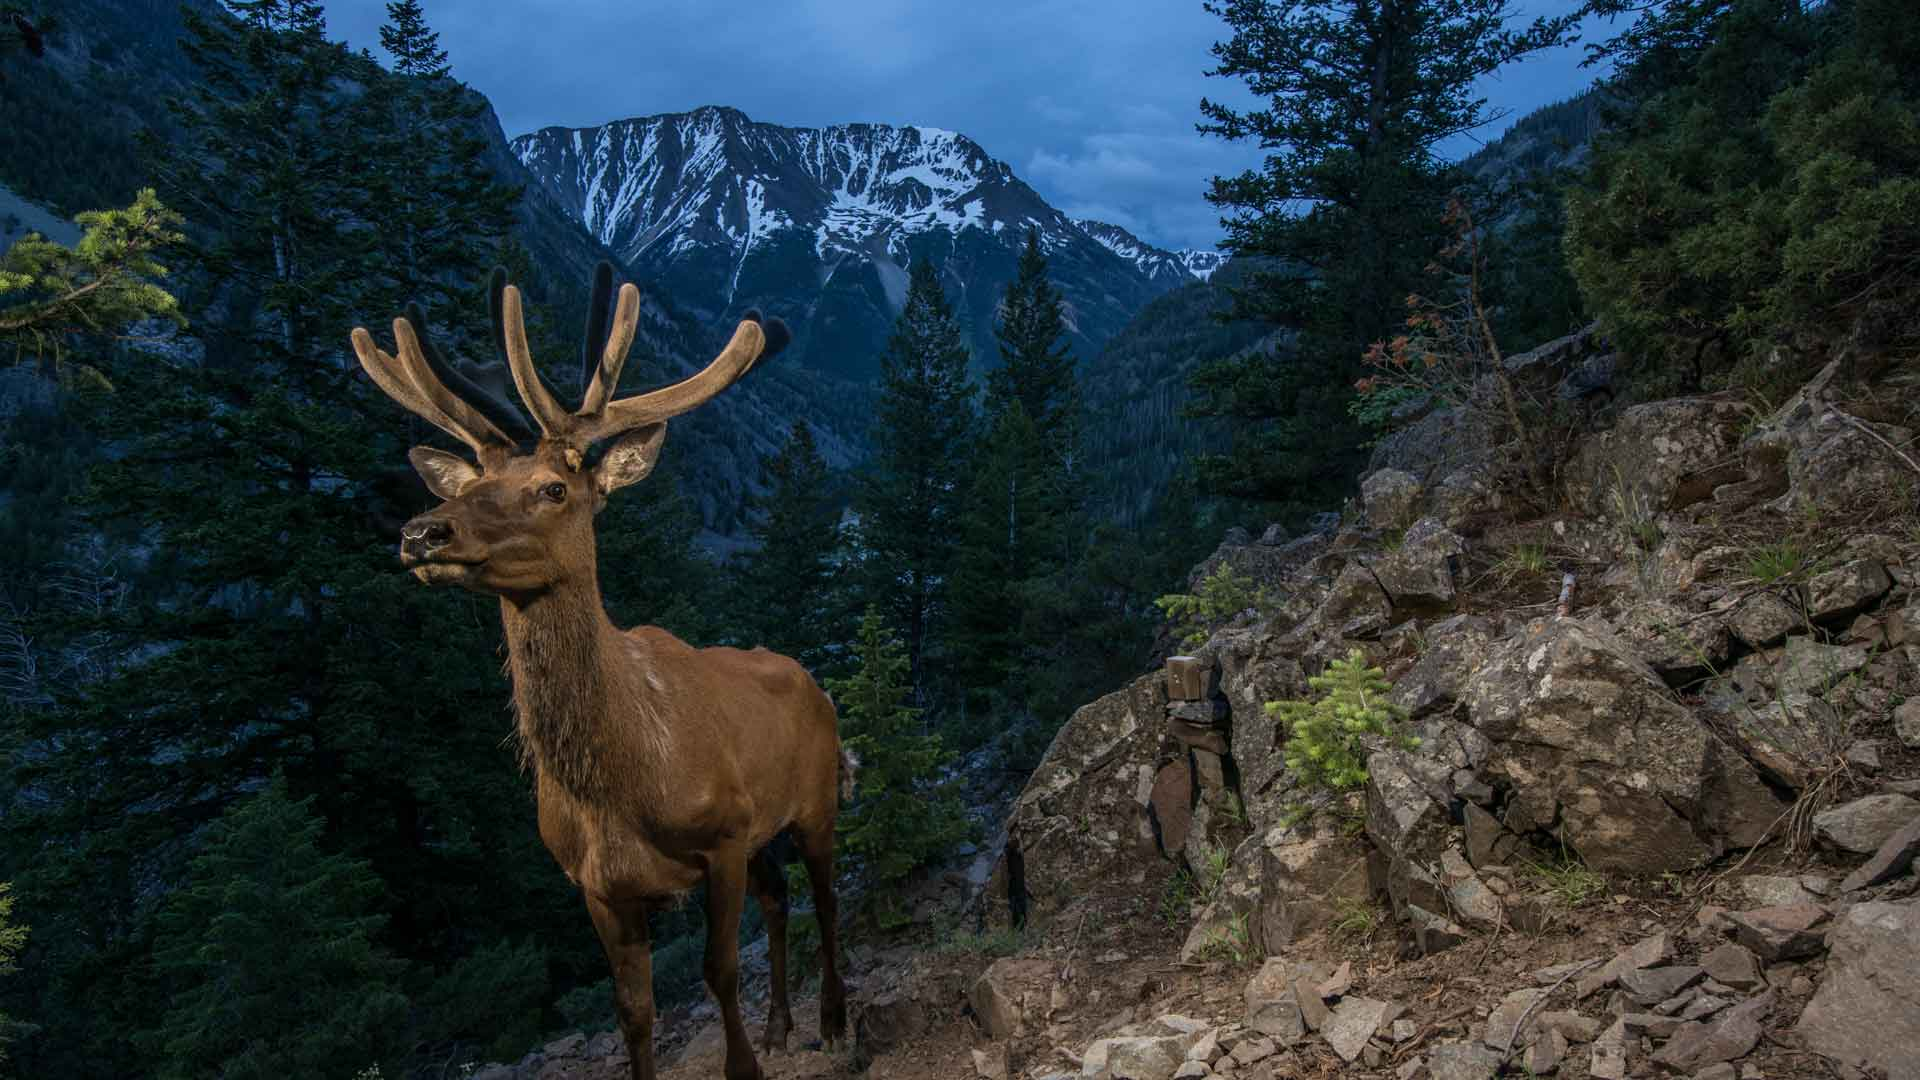 an elk stands on a steep slope at dusk with a mountain range in the distance. Photo by Joe Riis